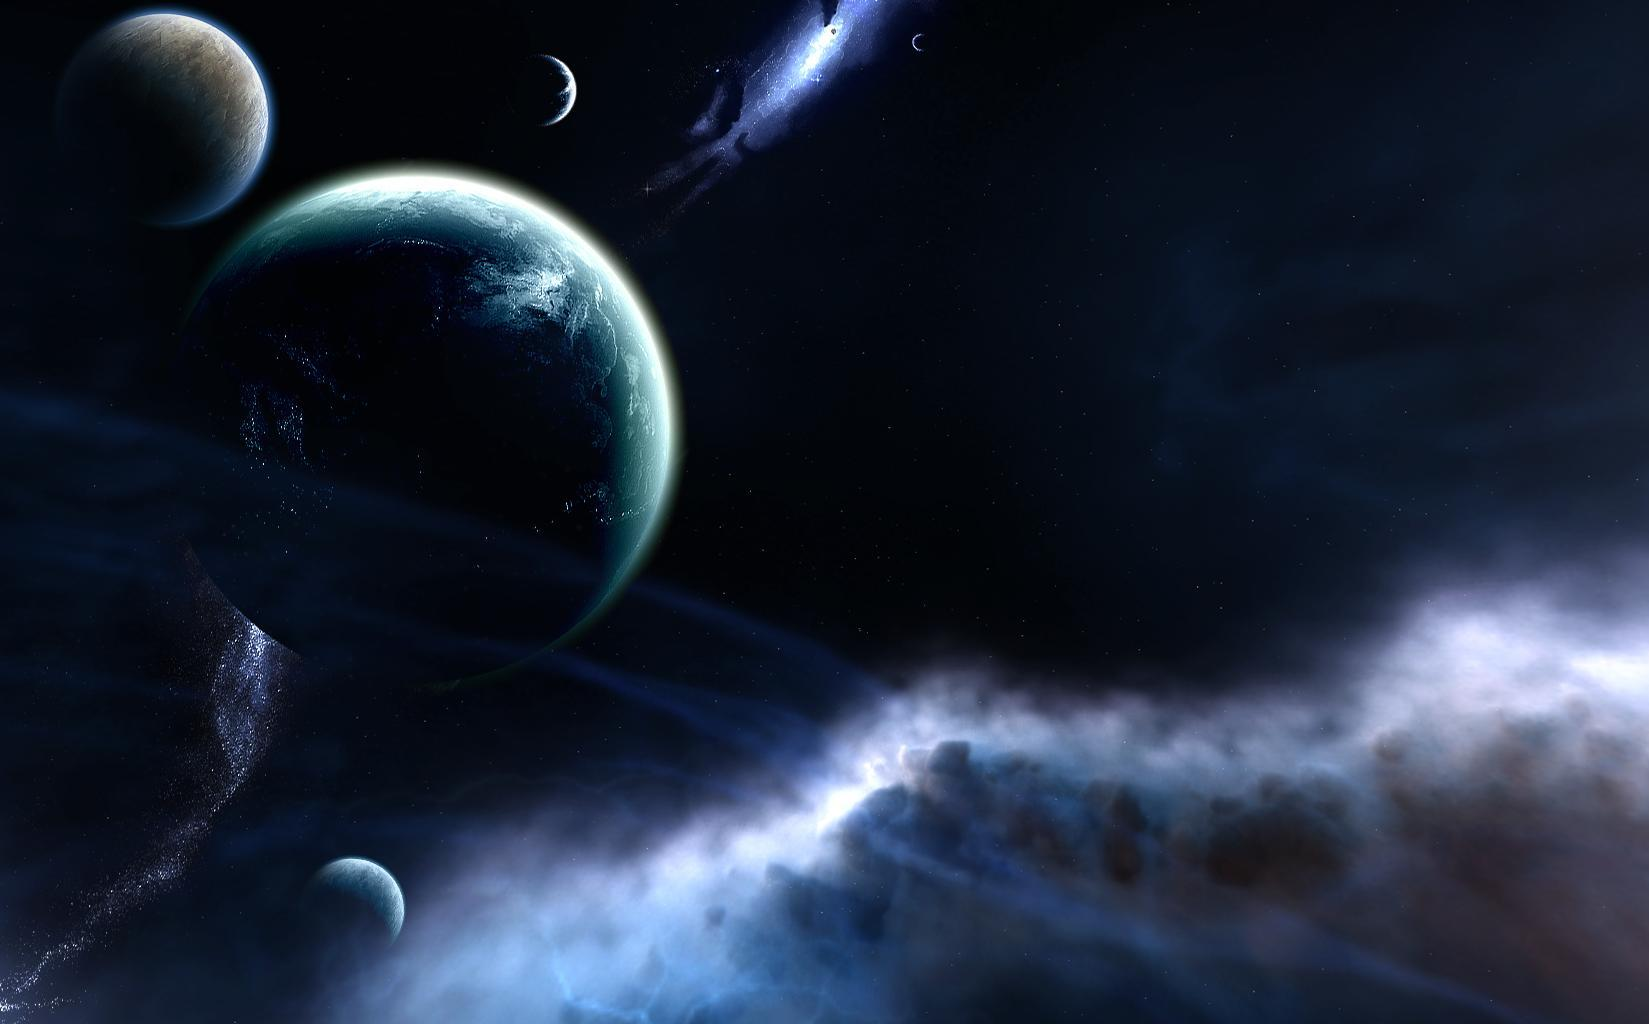 outer Space galaxies planets HD Wallpaper